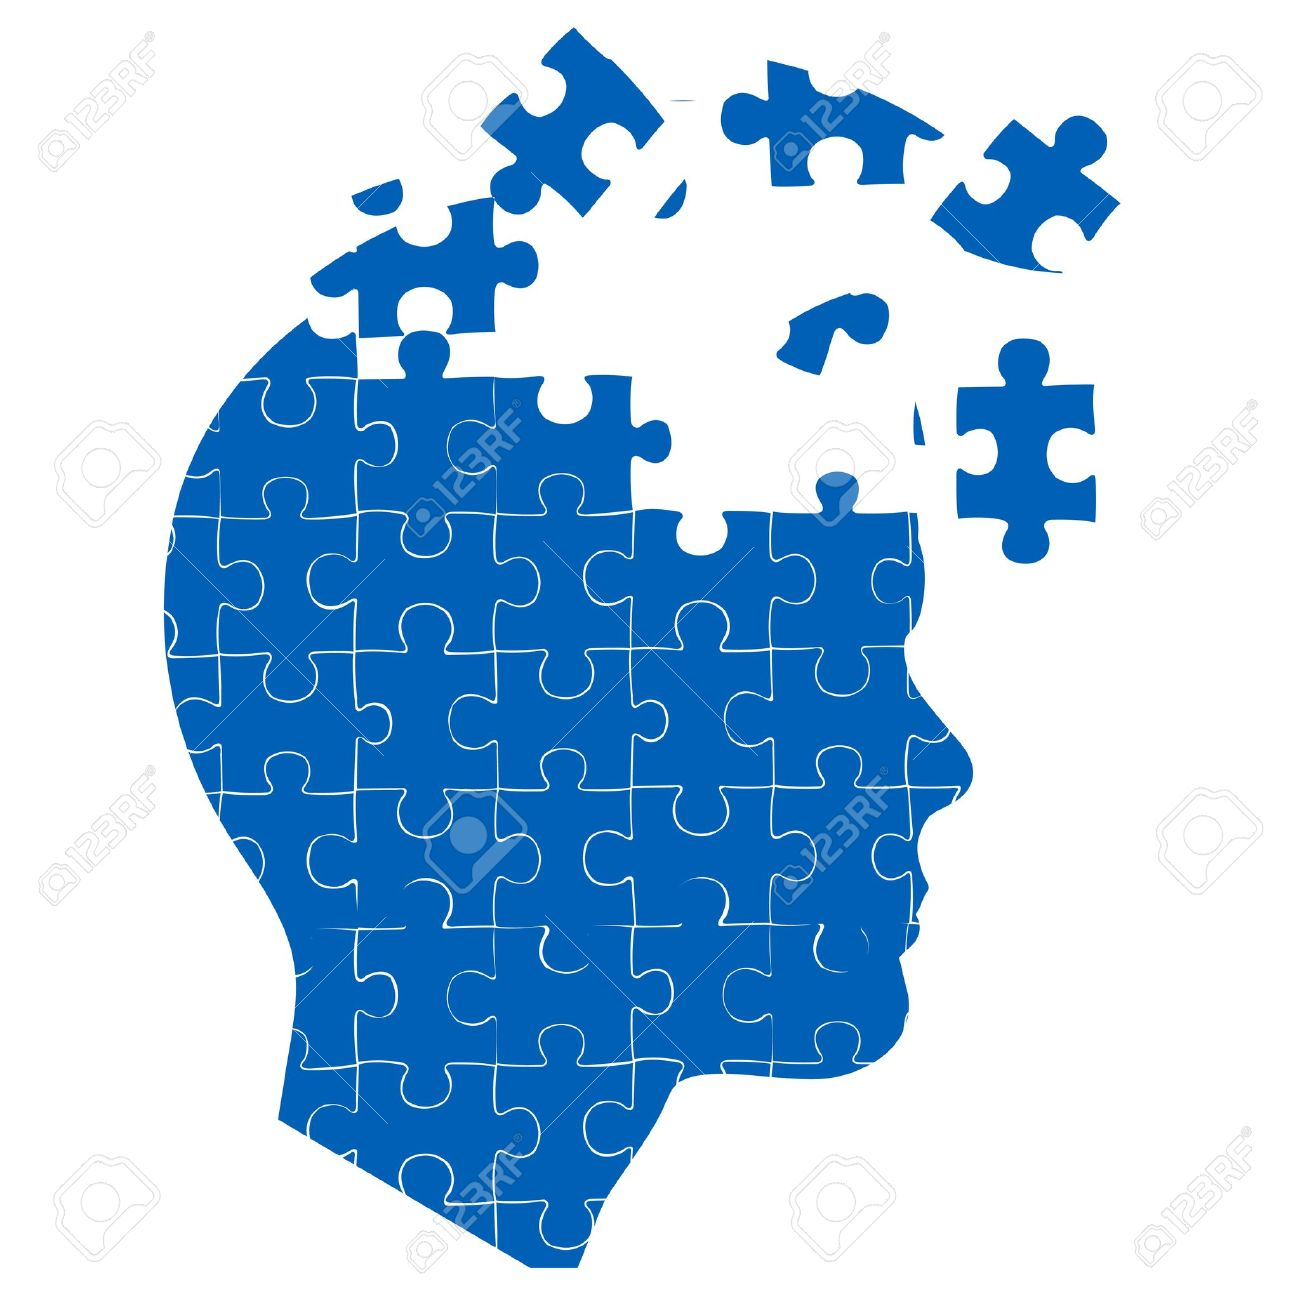 illustration of man's mind with jigsaw puzzle on white background - 8246895